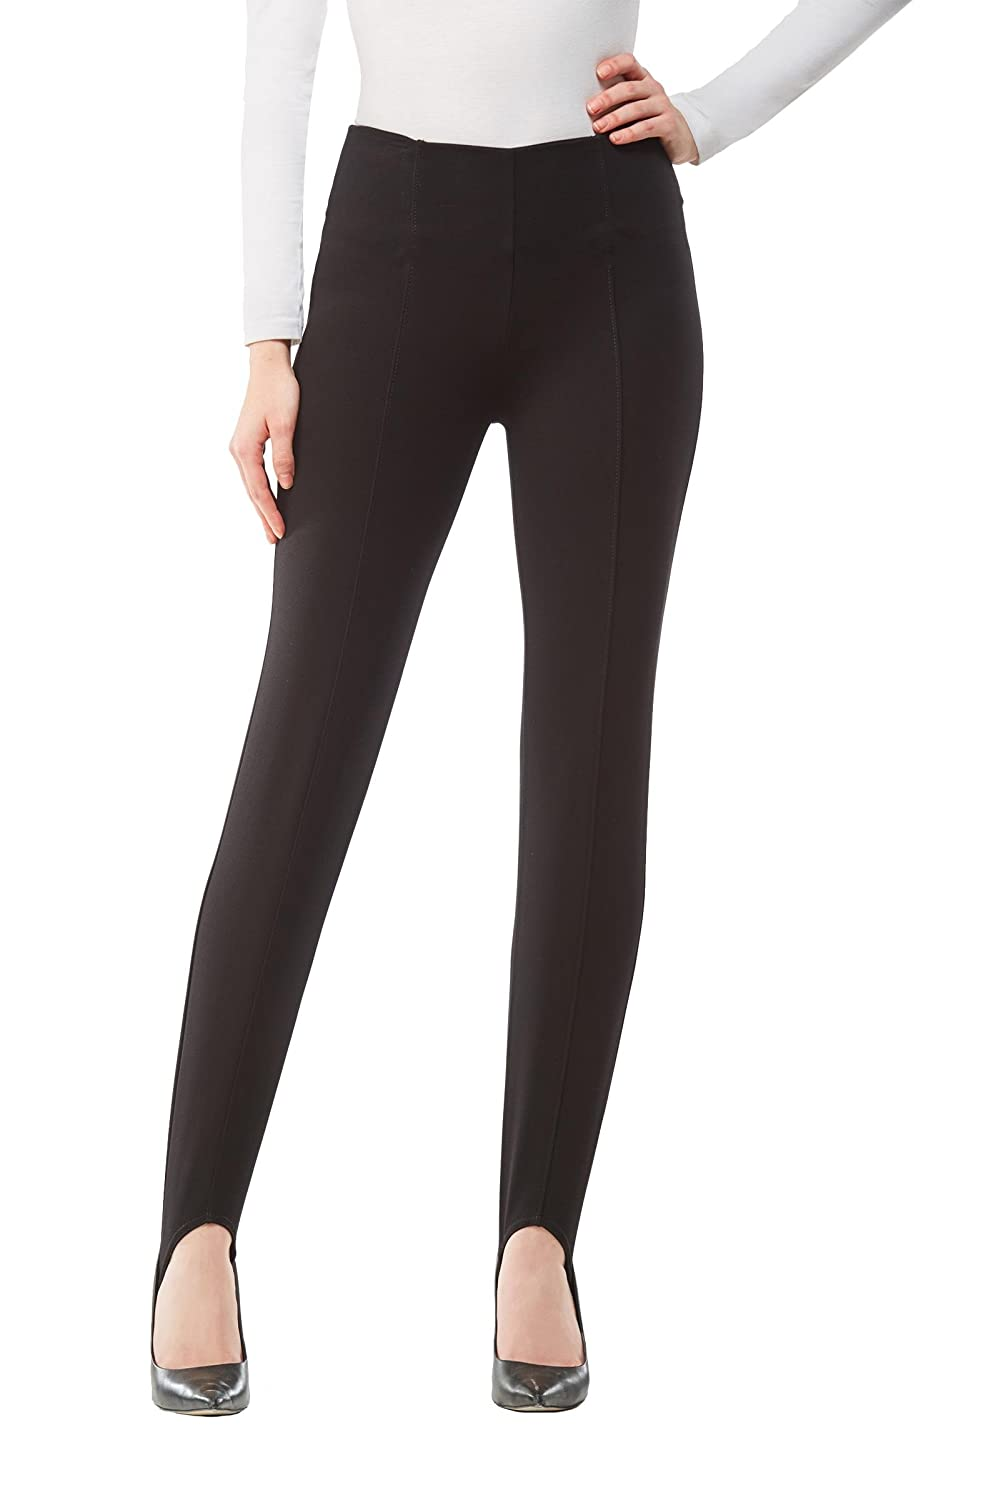 Nygard SLIMS Luxe Skinny Stirrup Pant 3L1SV1C5